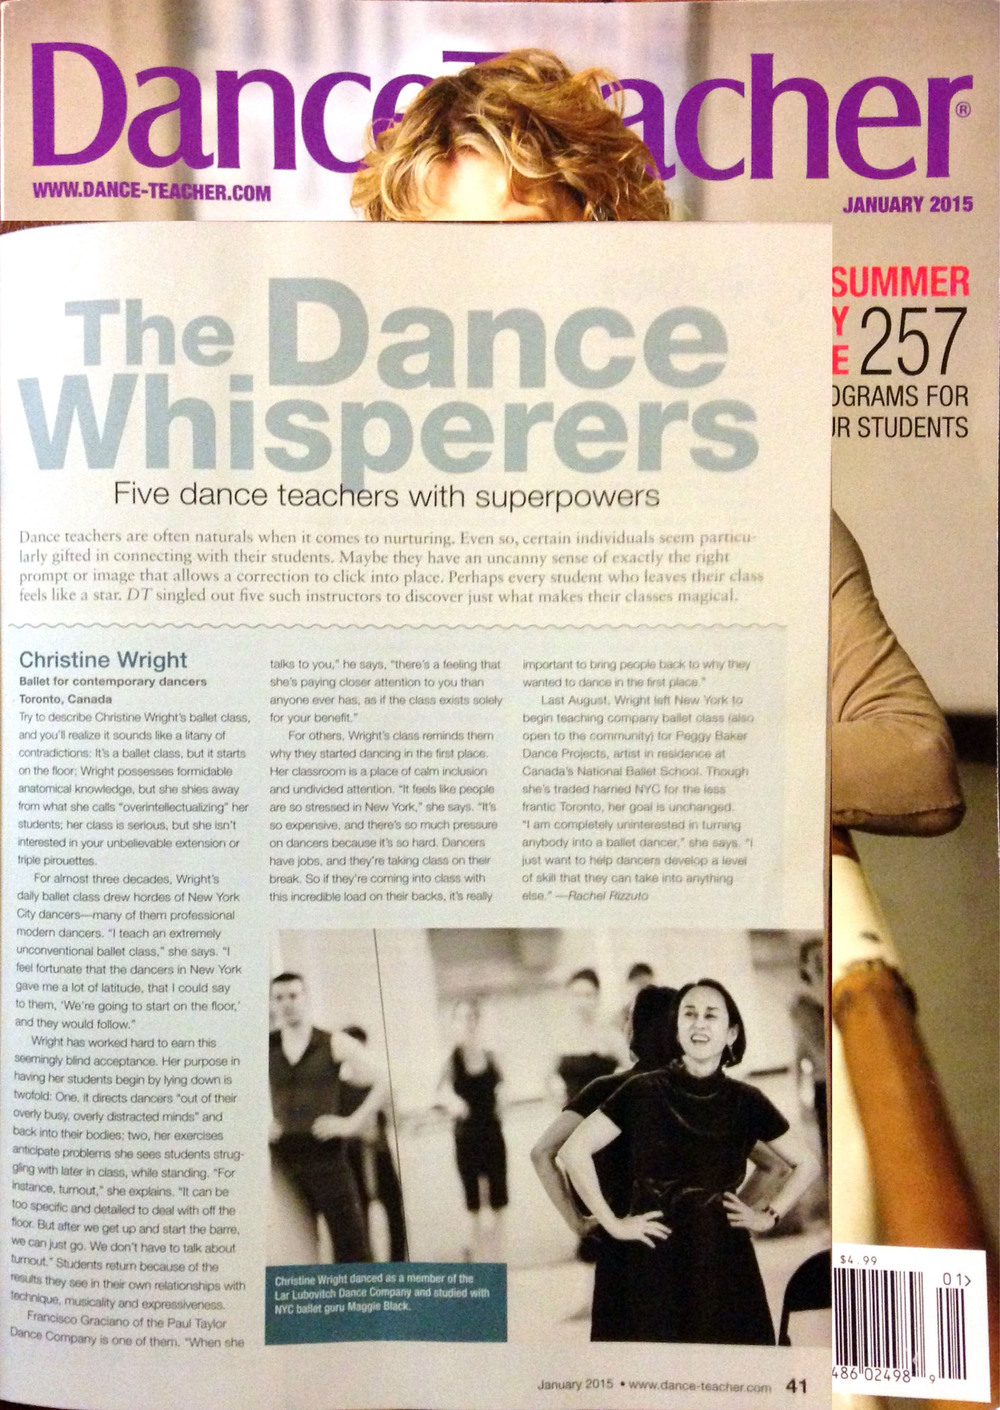 Dance Teacher Magazine, January 2015